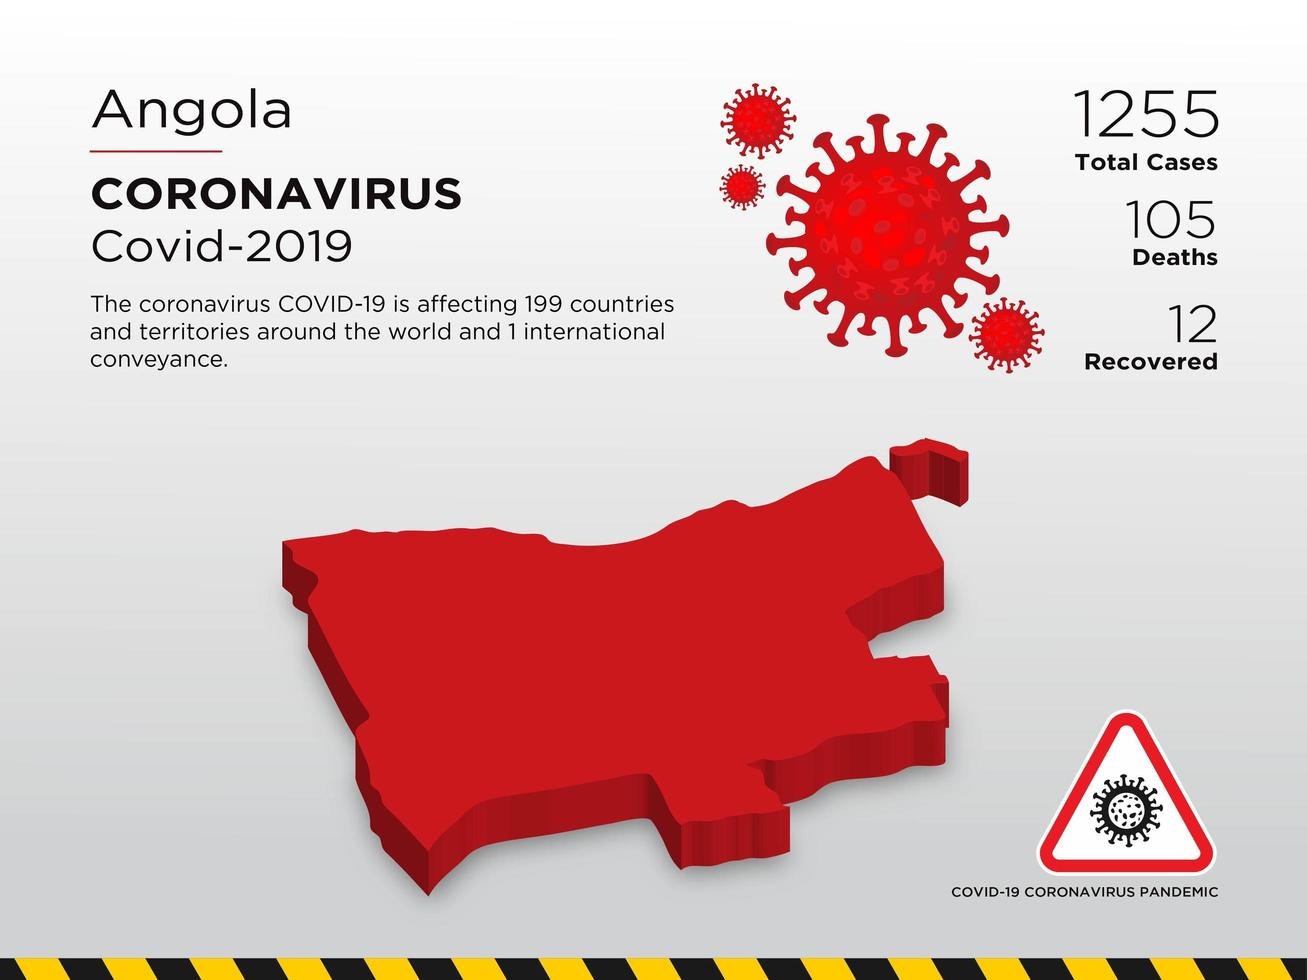 Angola Affected Country Map of Coronavirus Spread  vector